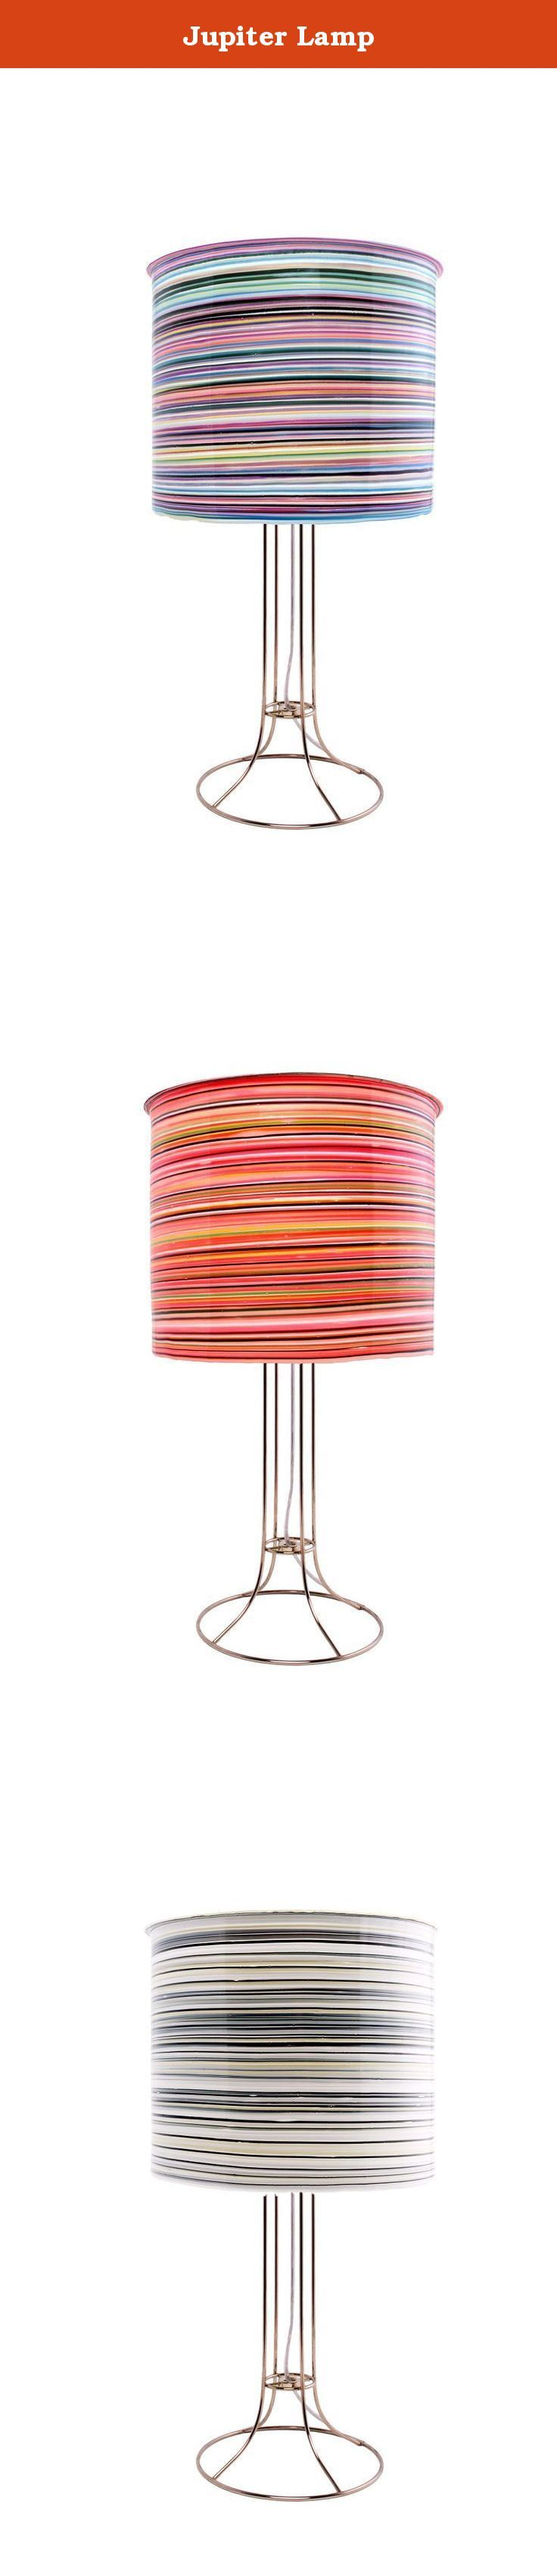 Jupiter Lamp. Traditional, sophisticated and modern! The straight stripe motif works in any setting. From foyer, kids room or end table. Our techniques for layering color neutralize the sterile effect of compact fluorescent bulbs, instead emoting a light that is warm and inviting, making high efficiency bulbs the ideal and responsible choice. We have mastered a combination of elegance and efficiency.